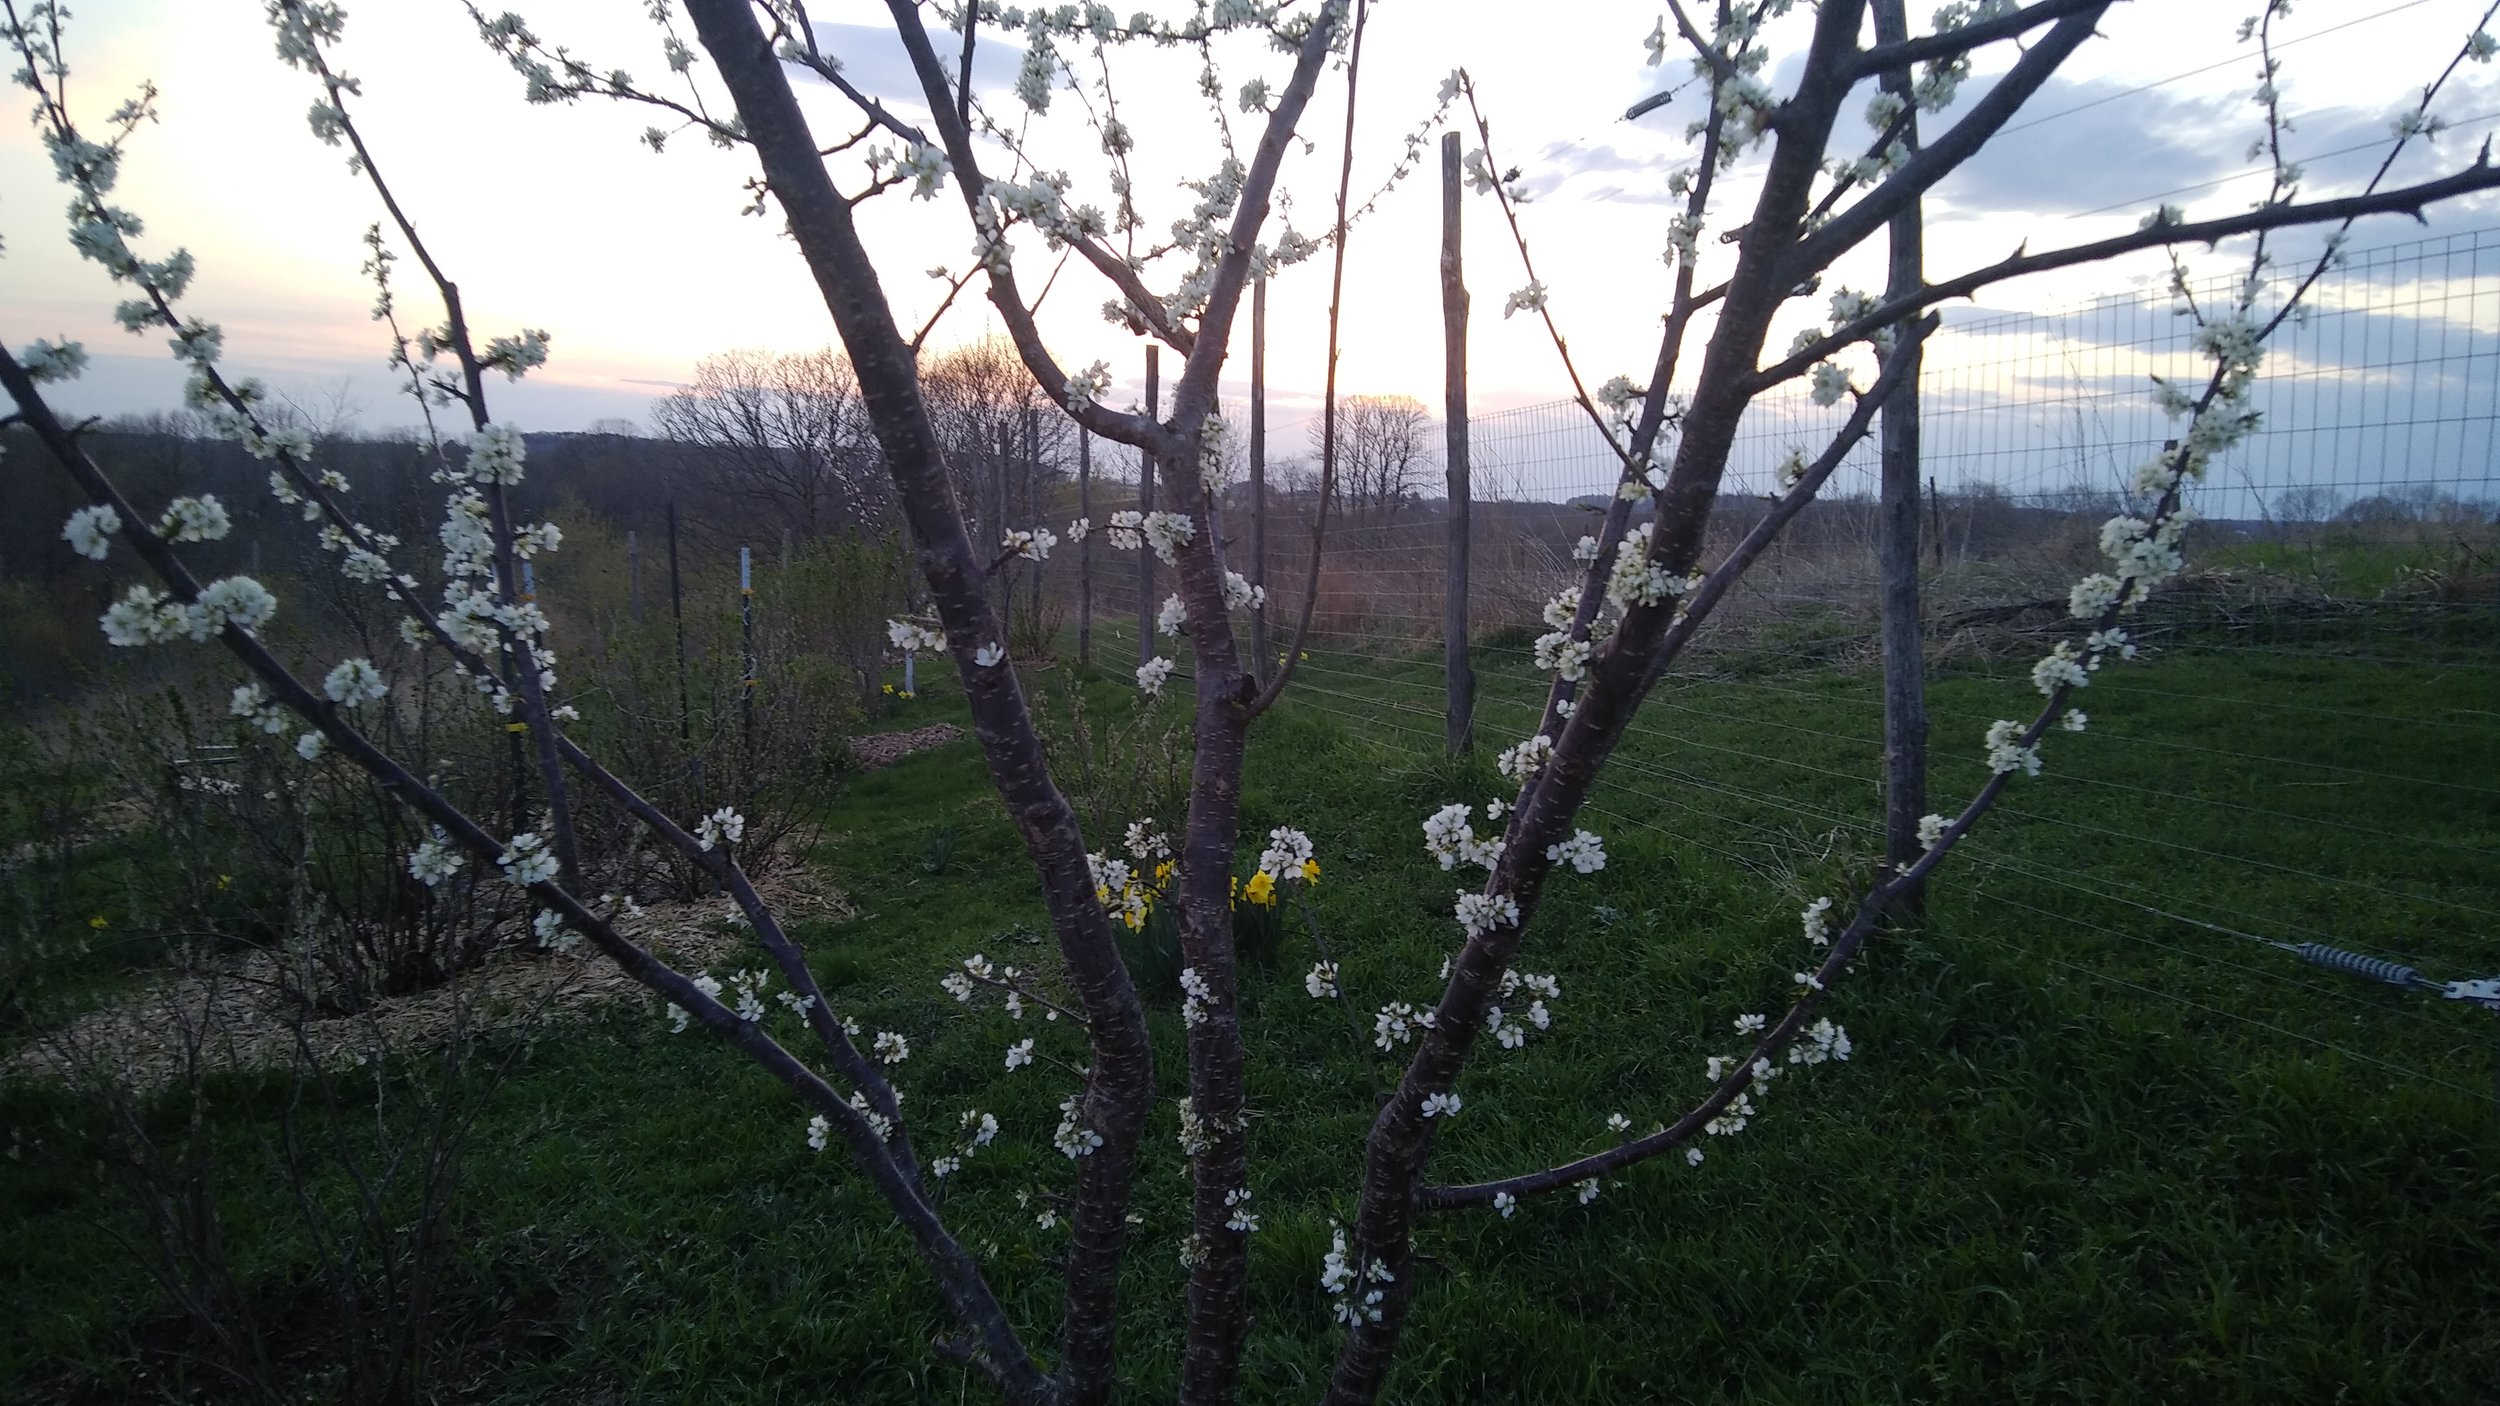 Apricot blossoms in late April. Photo by Rob McClure